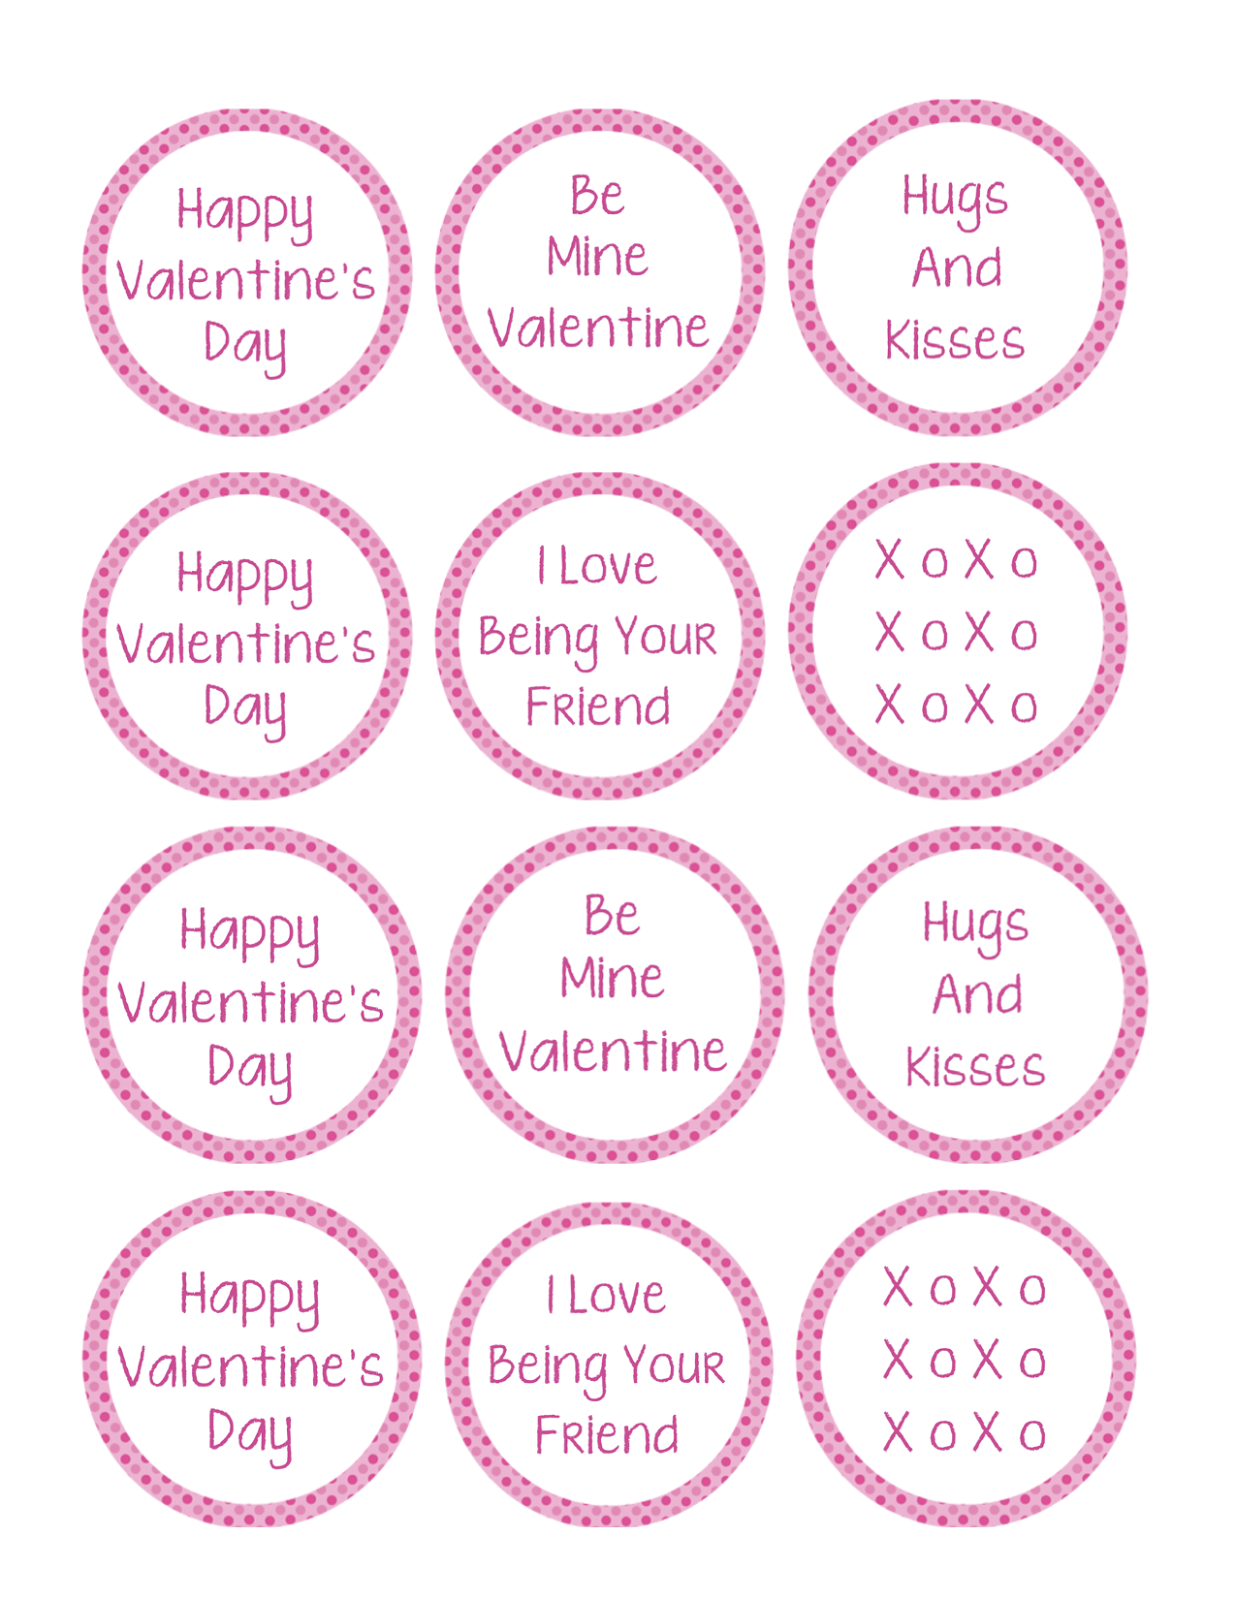 photograph relating to Printable Cupcakes Toppers identify Valentine Cupcake Topper Printable for Boys Gals - Get pleasure from